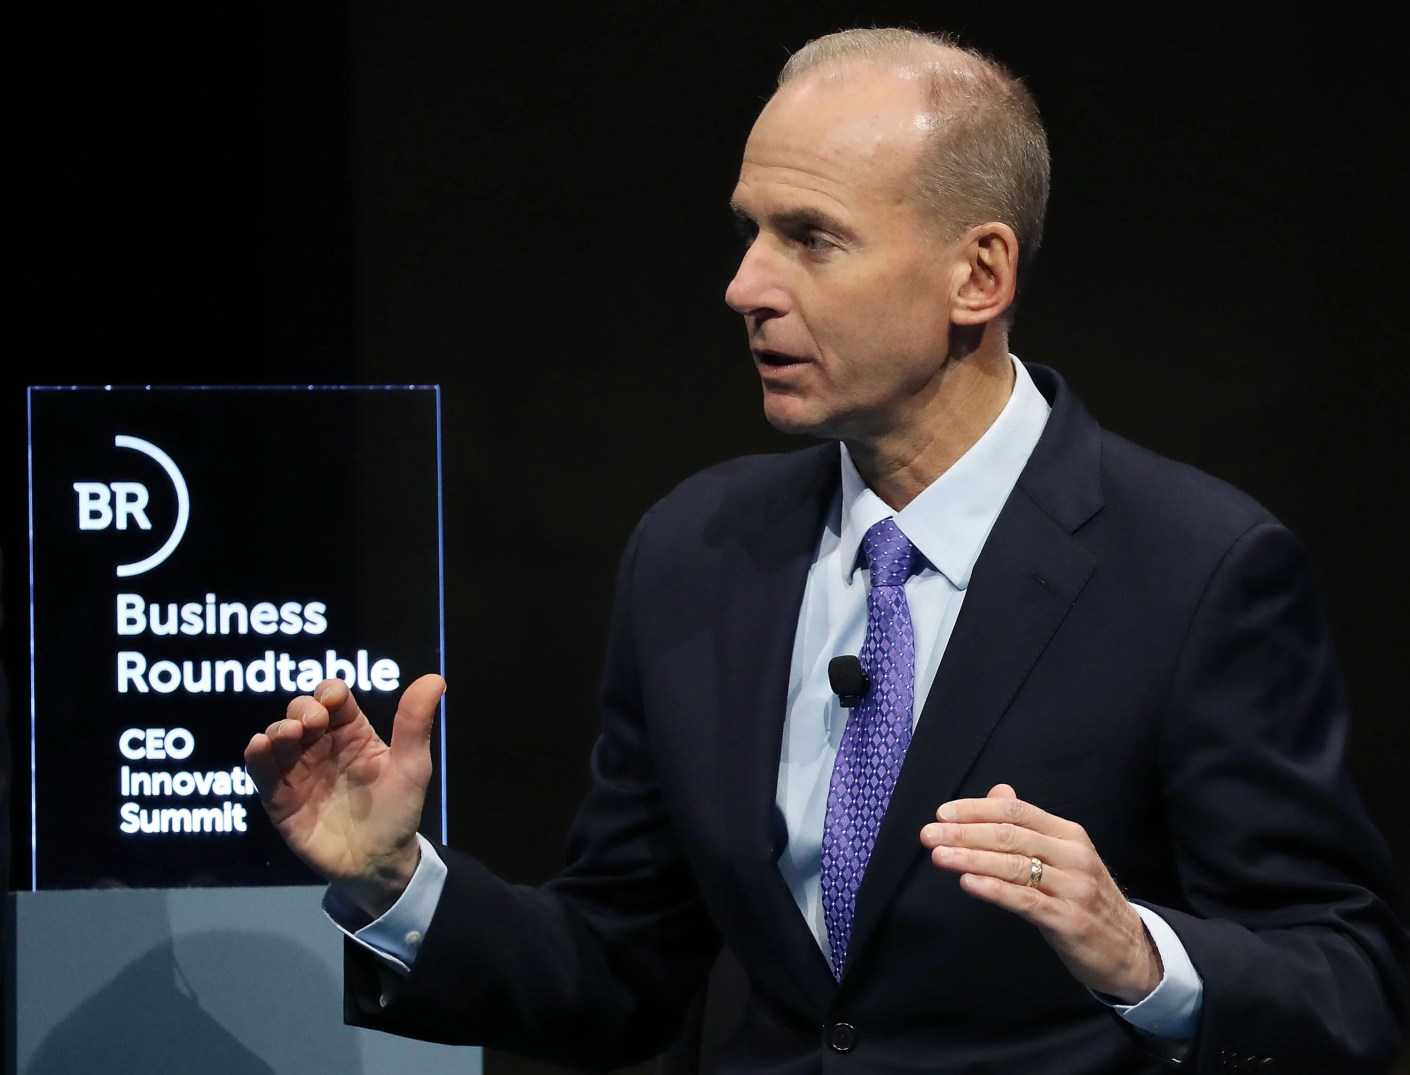 "WASHINGTON, DC - DECEMBER 06: Dennis Muilenburg, chairman, president and CEO of the Boeing Company, participates in a Business Roundtable discussion on ""Ambitious Innovation"" sustaining U.S. leadership, during a CEO Innovation Summit, on December 6, 2018 in Washington, DC. (Photo by Mark Wilson/Getty Images)"